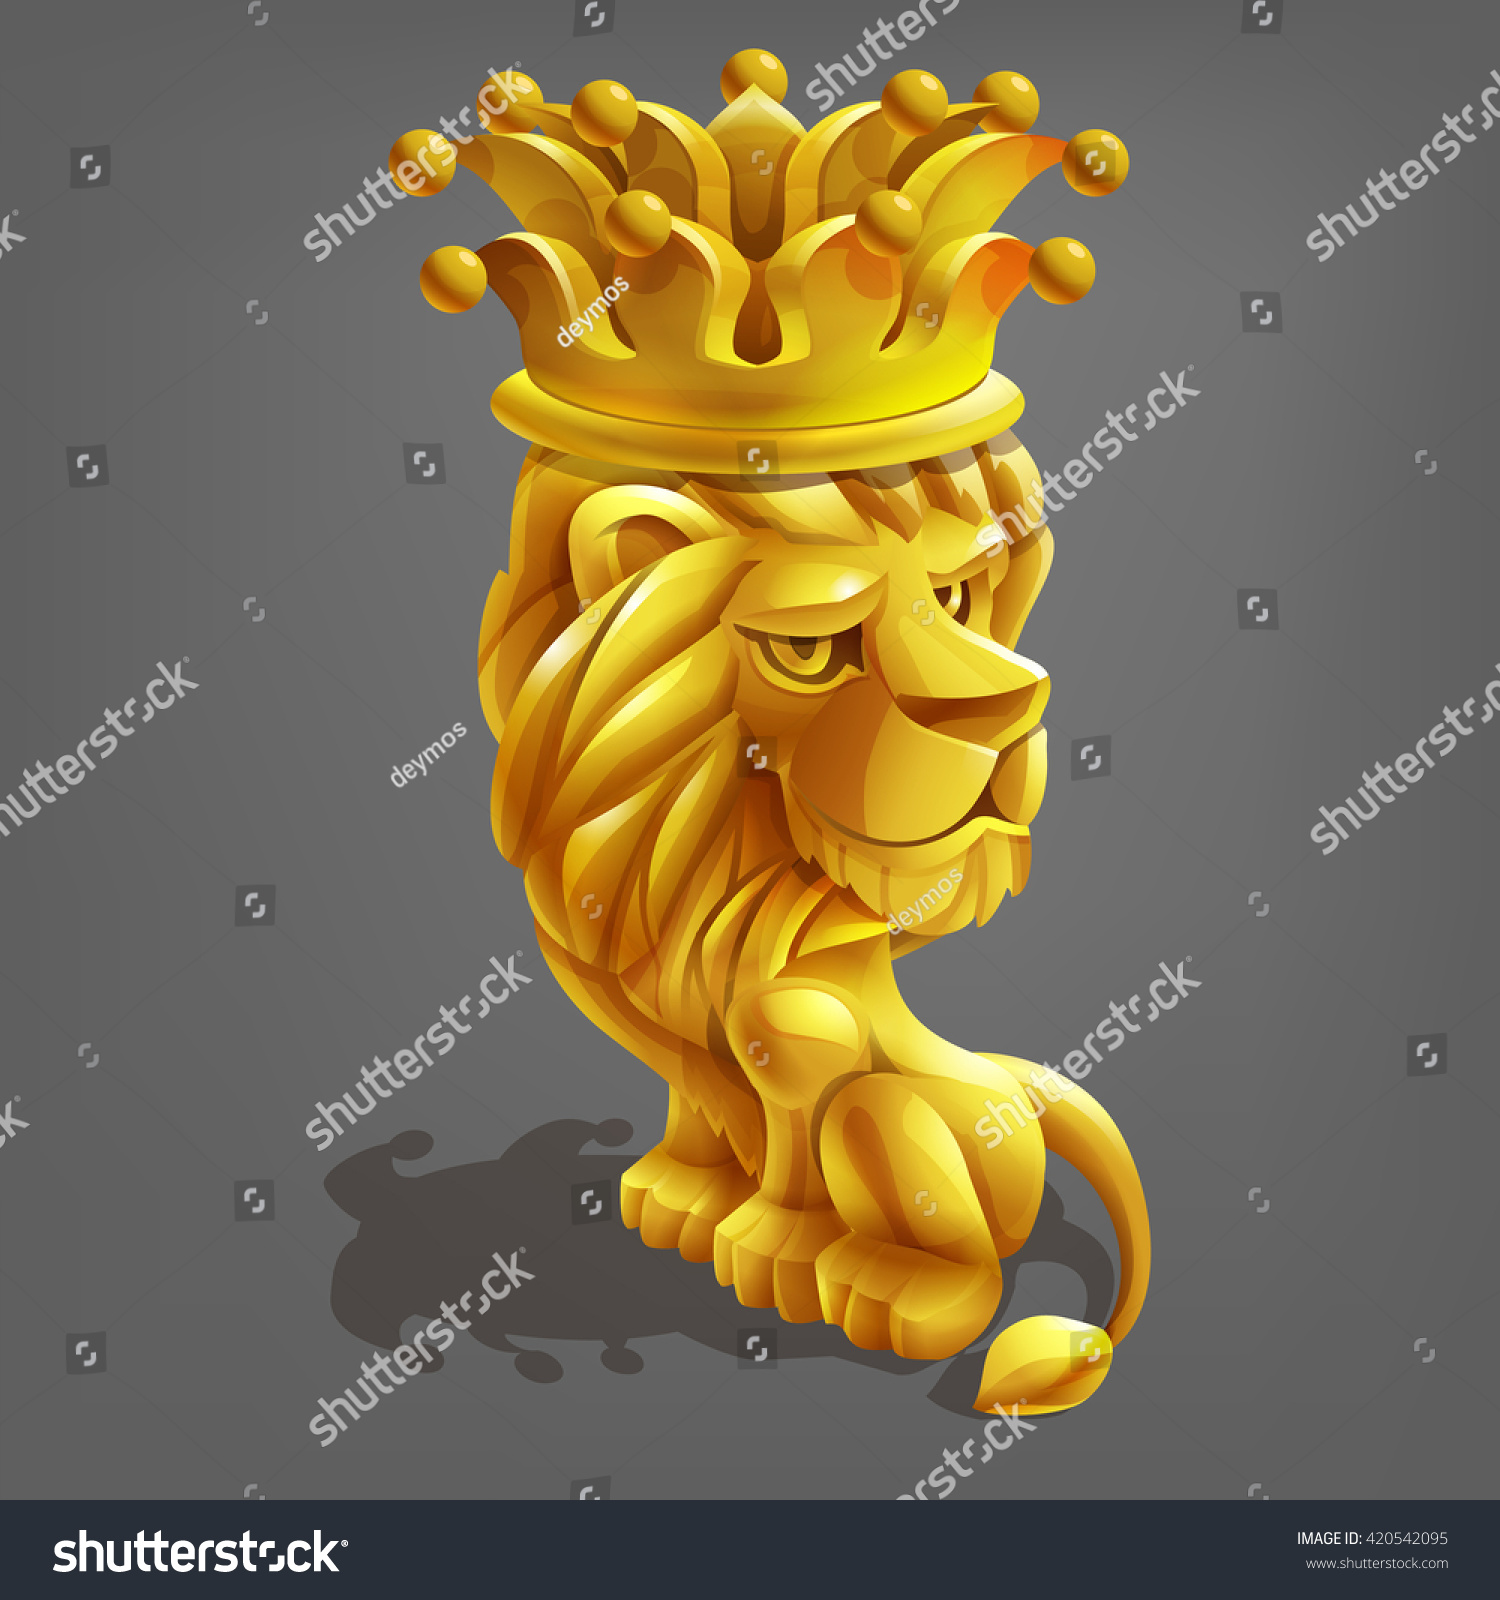 Reward Cartoon Golden Lion Crown Vector Stock Vector Royalty Free 420542095 Cartoon lion wearing a crown royalty free vector image. shutterstock